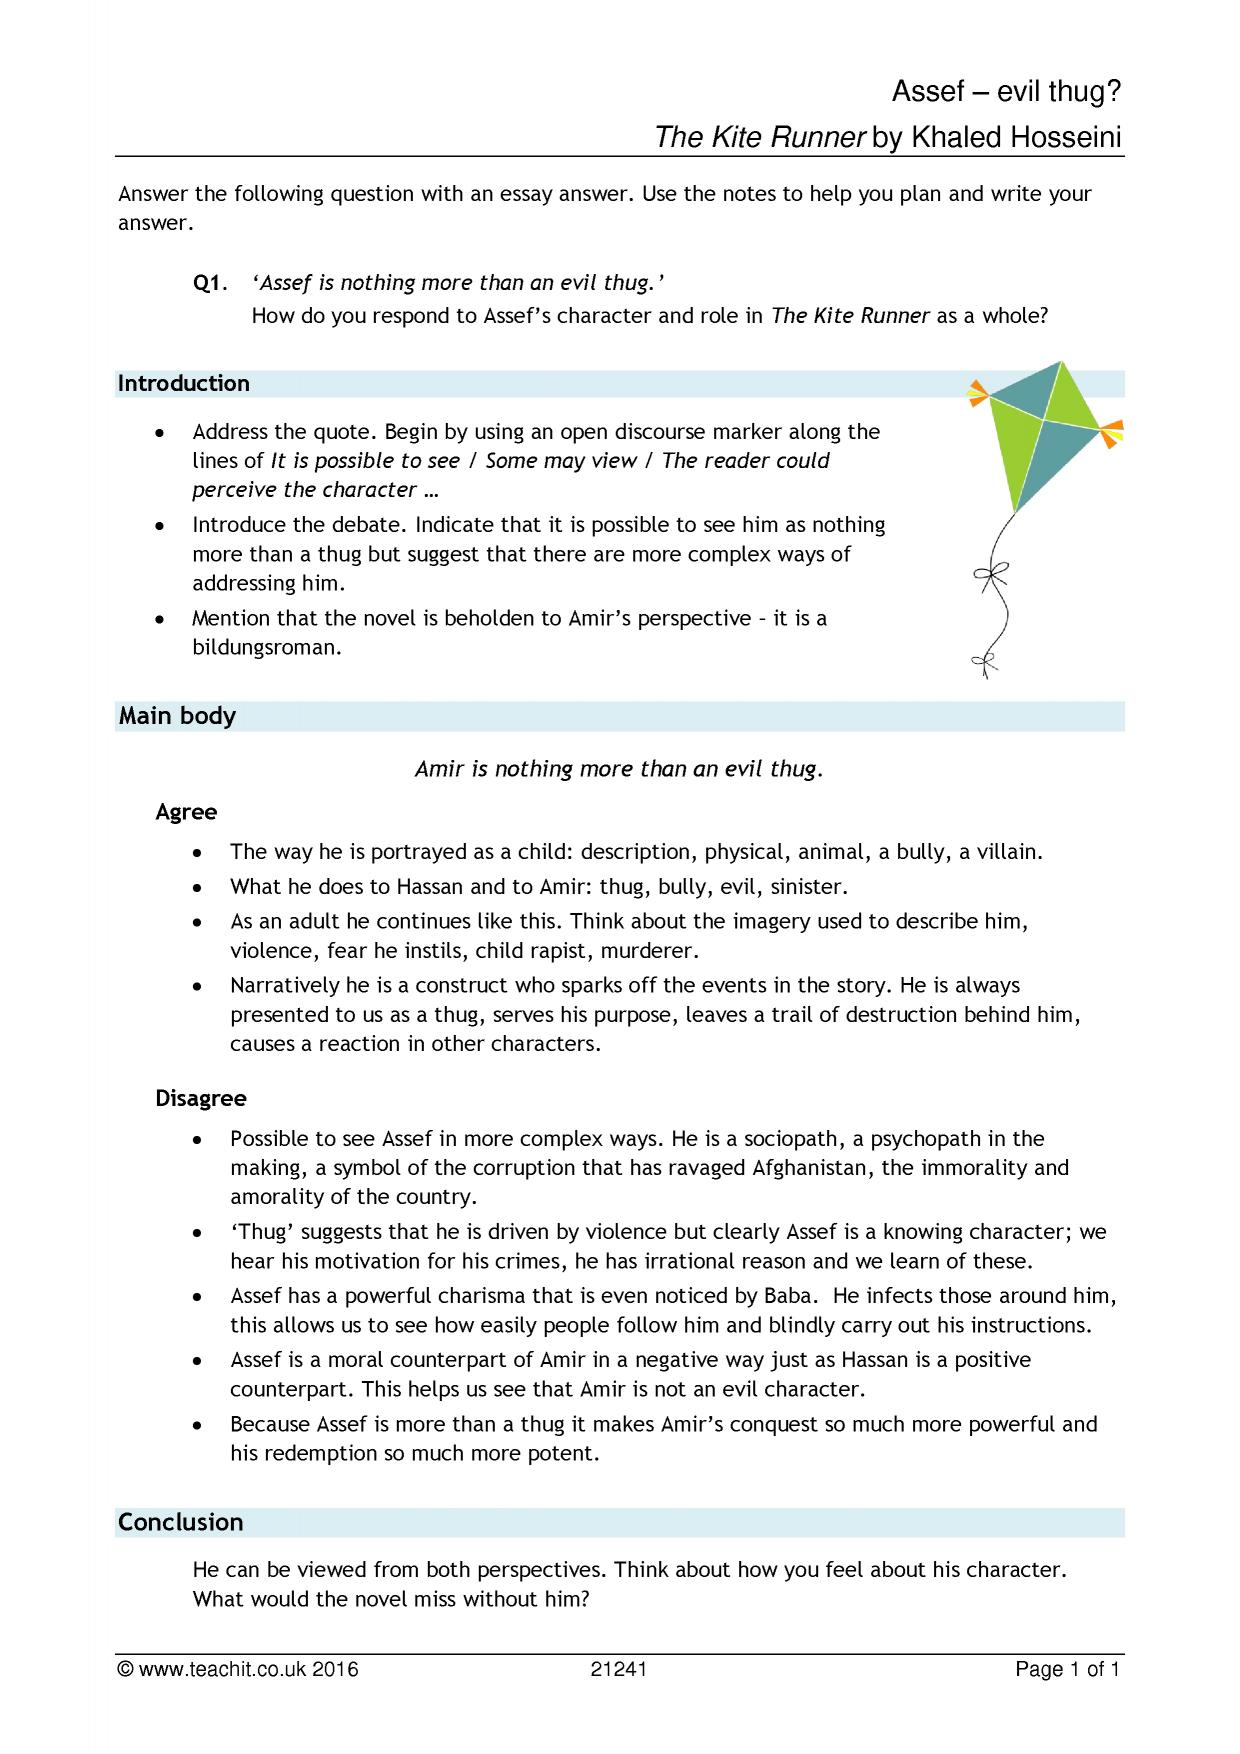 My Hobby Essay In English  Preview Essay In English Language also Essays On The Yellow Wallpaper Ks Prose  The Kite Runner By Khaled Hosseini  Teachit English Science Topics For Essays